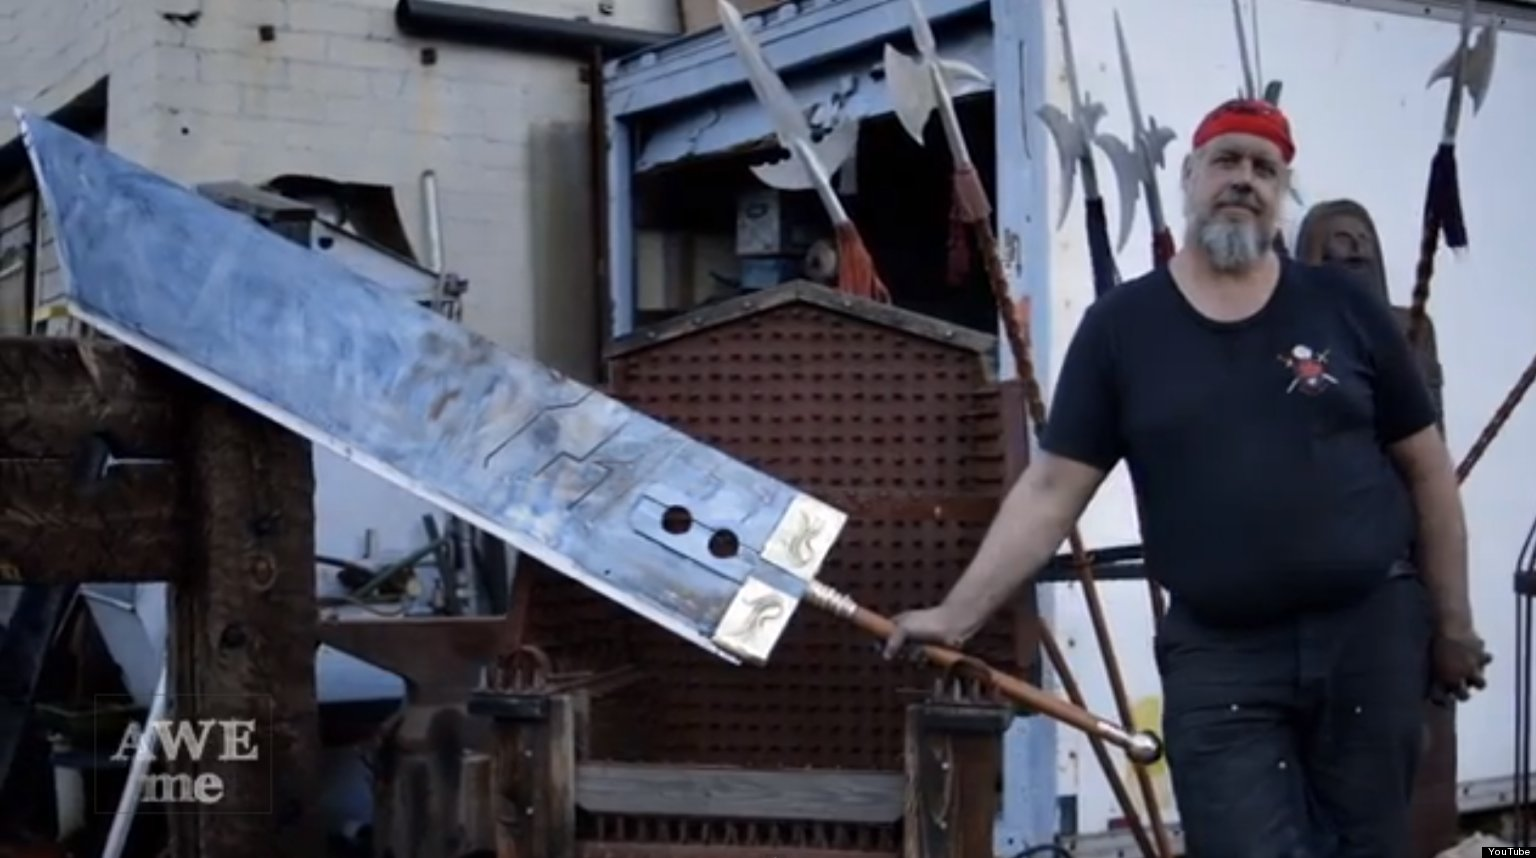 final fantasy vii buster sword made by blacksmith is